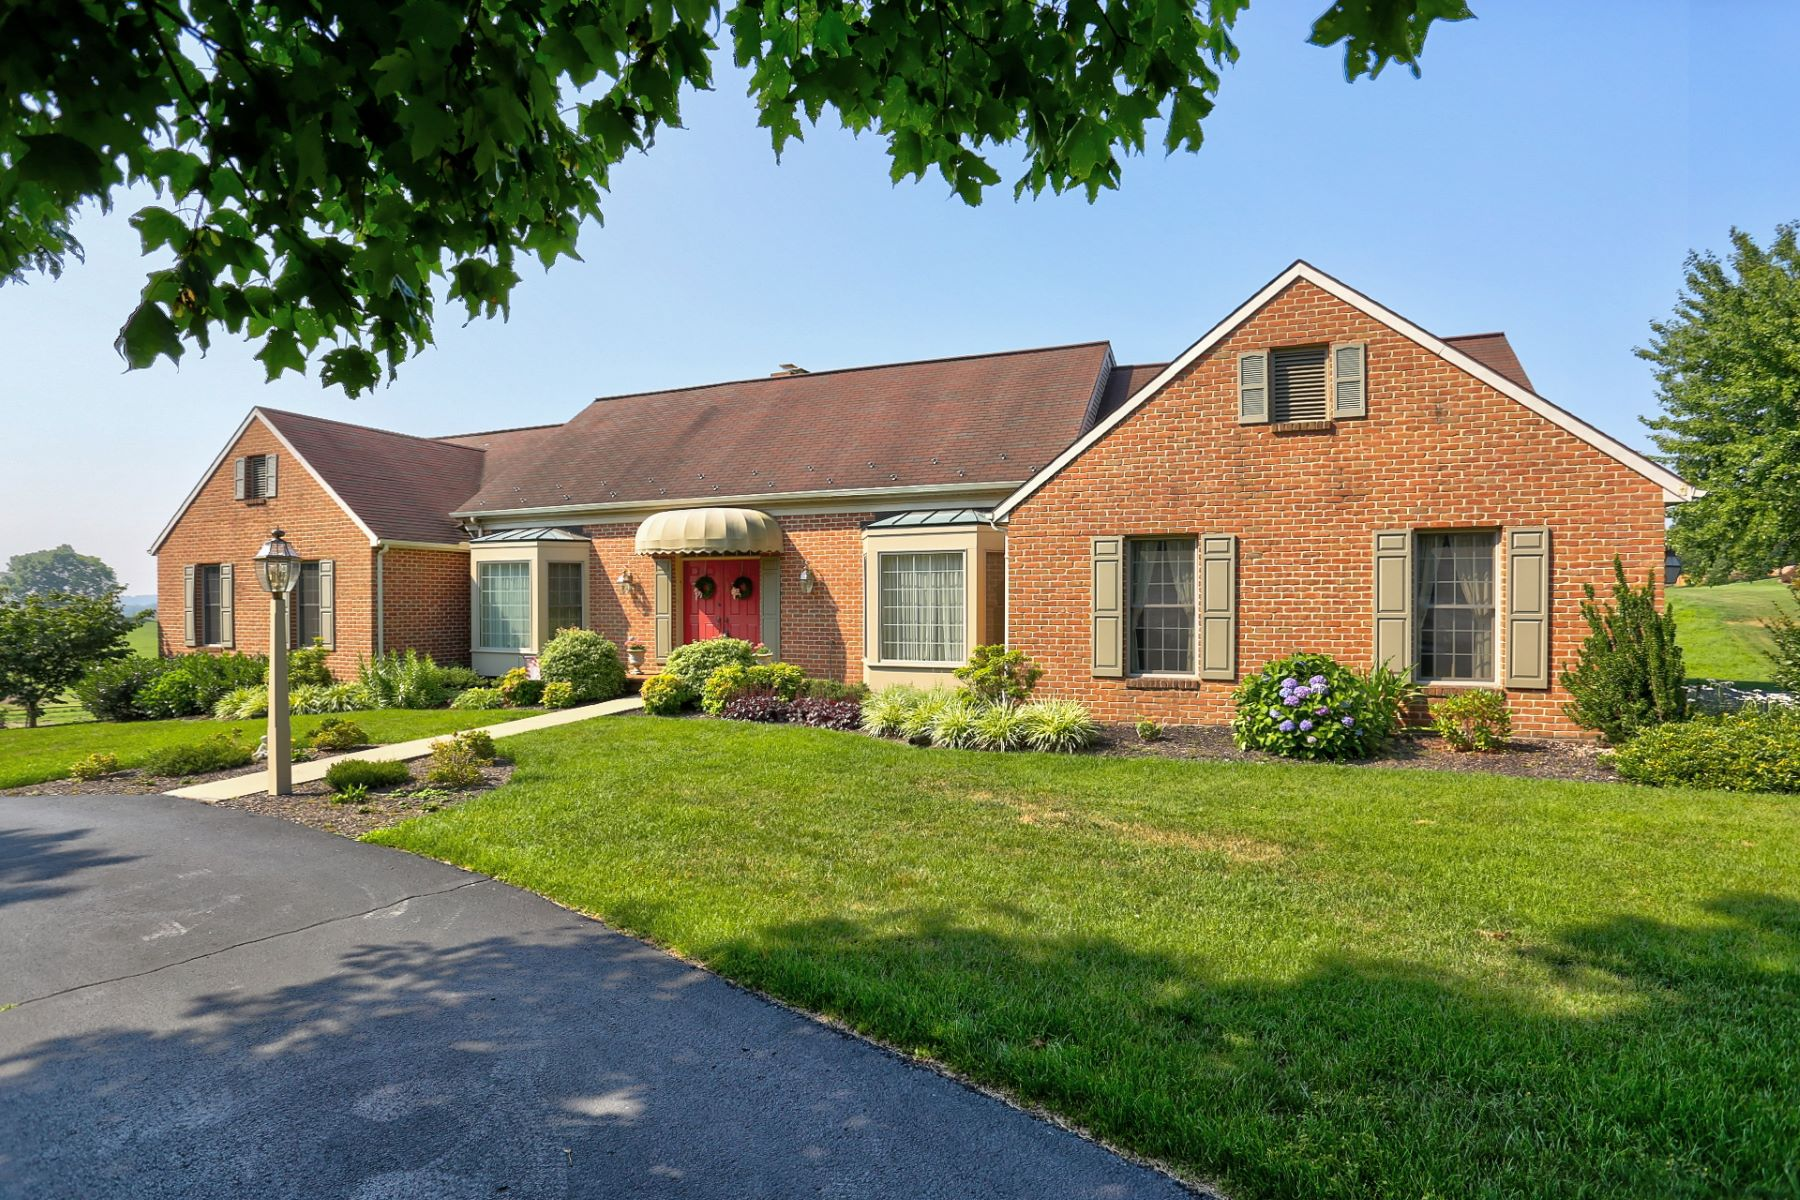 Single Family Home for Sale at 398 West Woods Drive Lititz, Pennsylvania 17543 United States